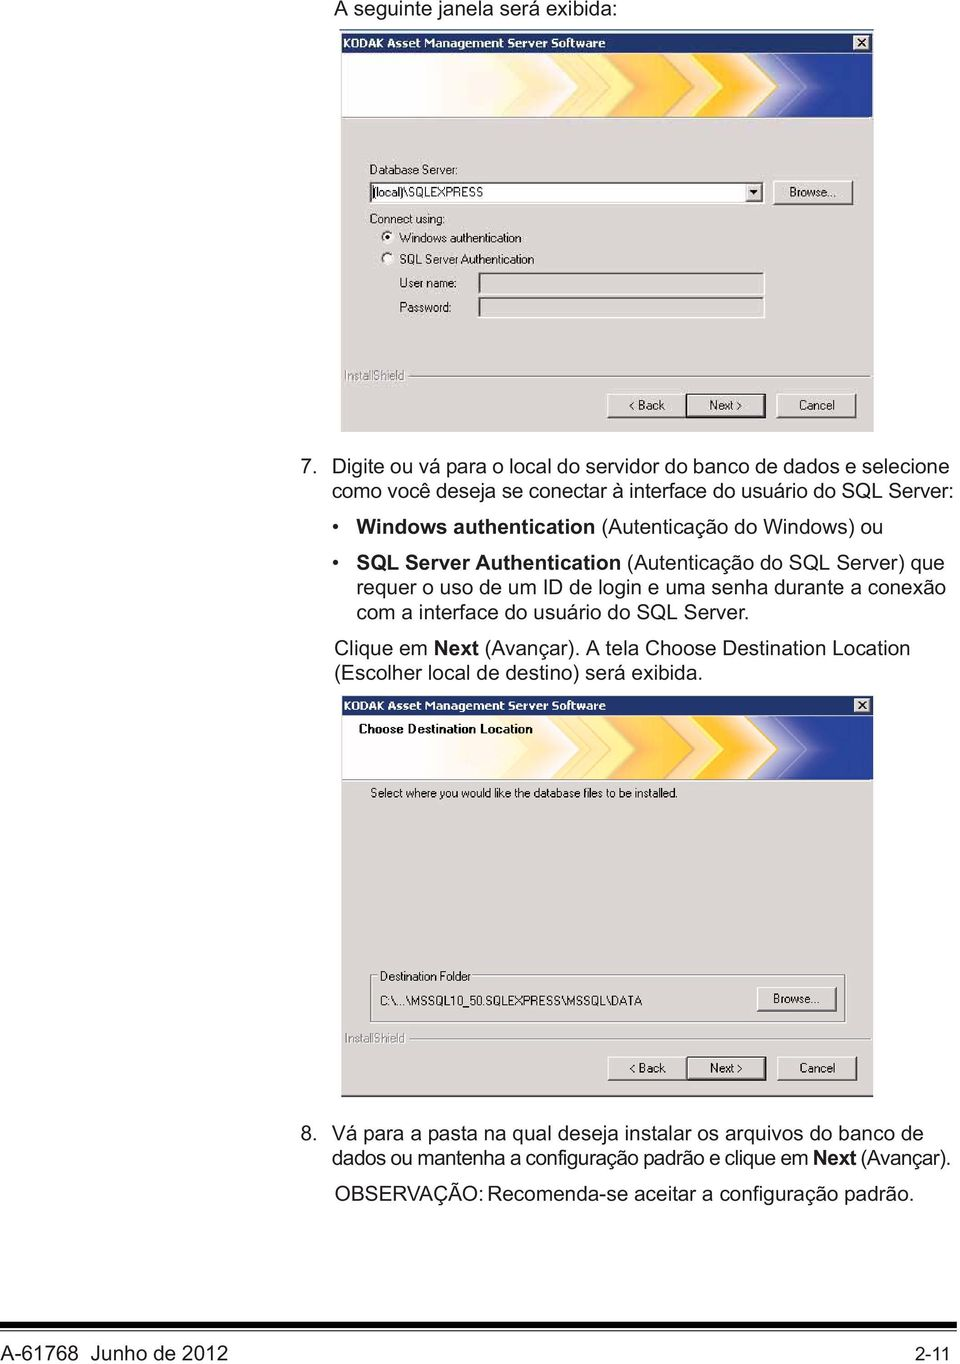 Windows) ou SQL Server Authentication (Autenticação do SQL Server) que requer o uso de um ID de login e uma senha durante a conexão com a interface do usuário do SQL Server.